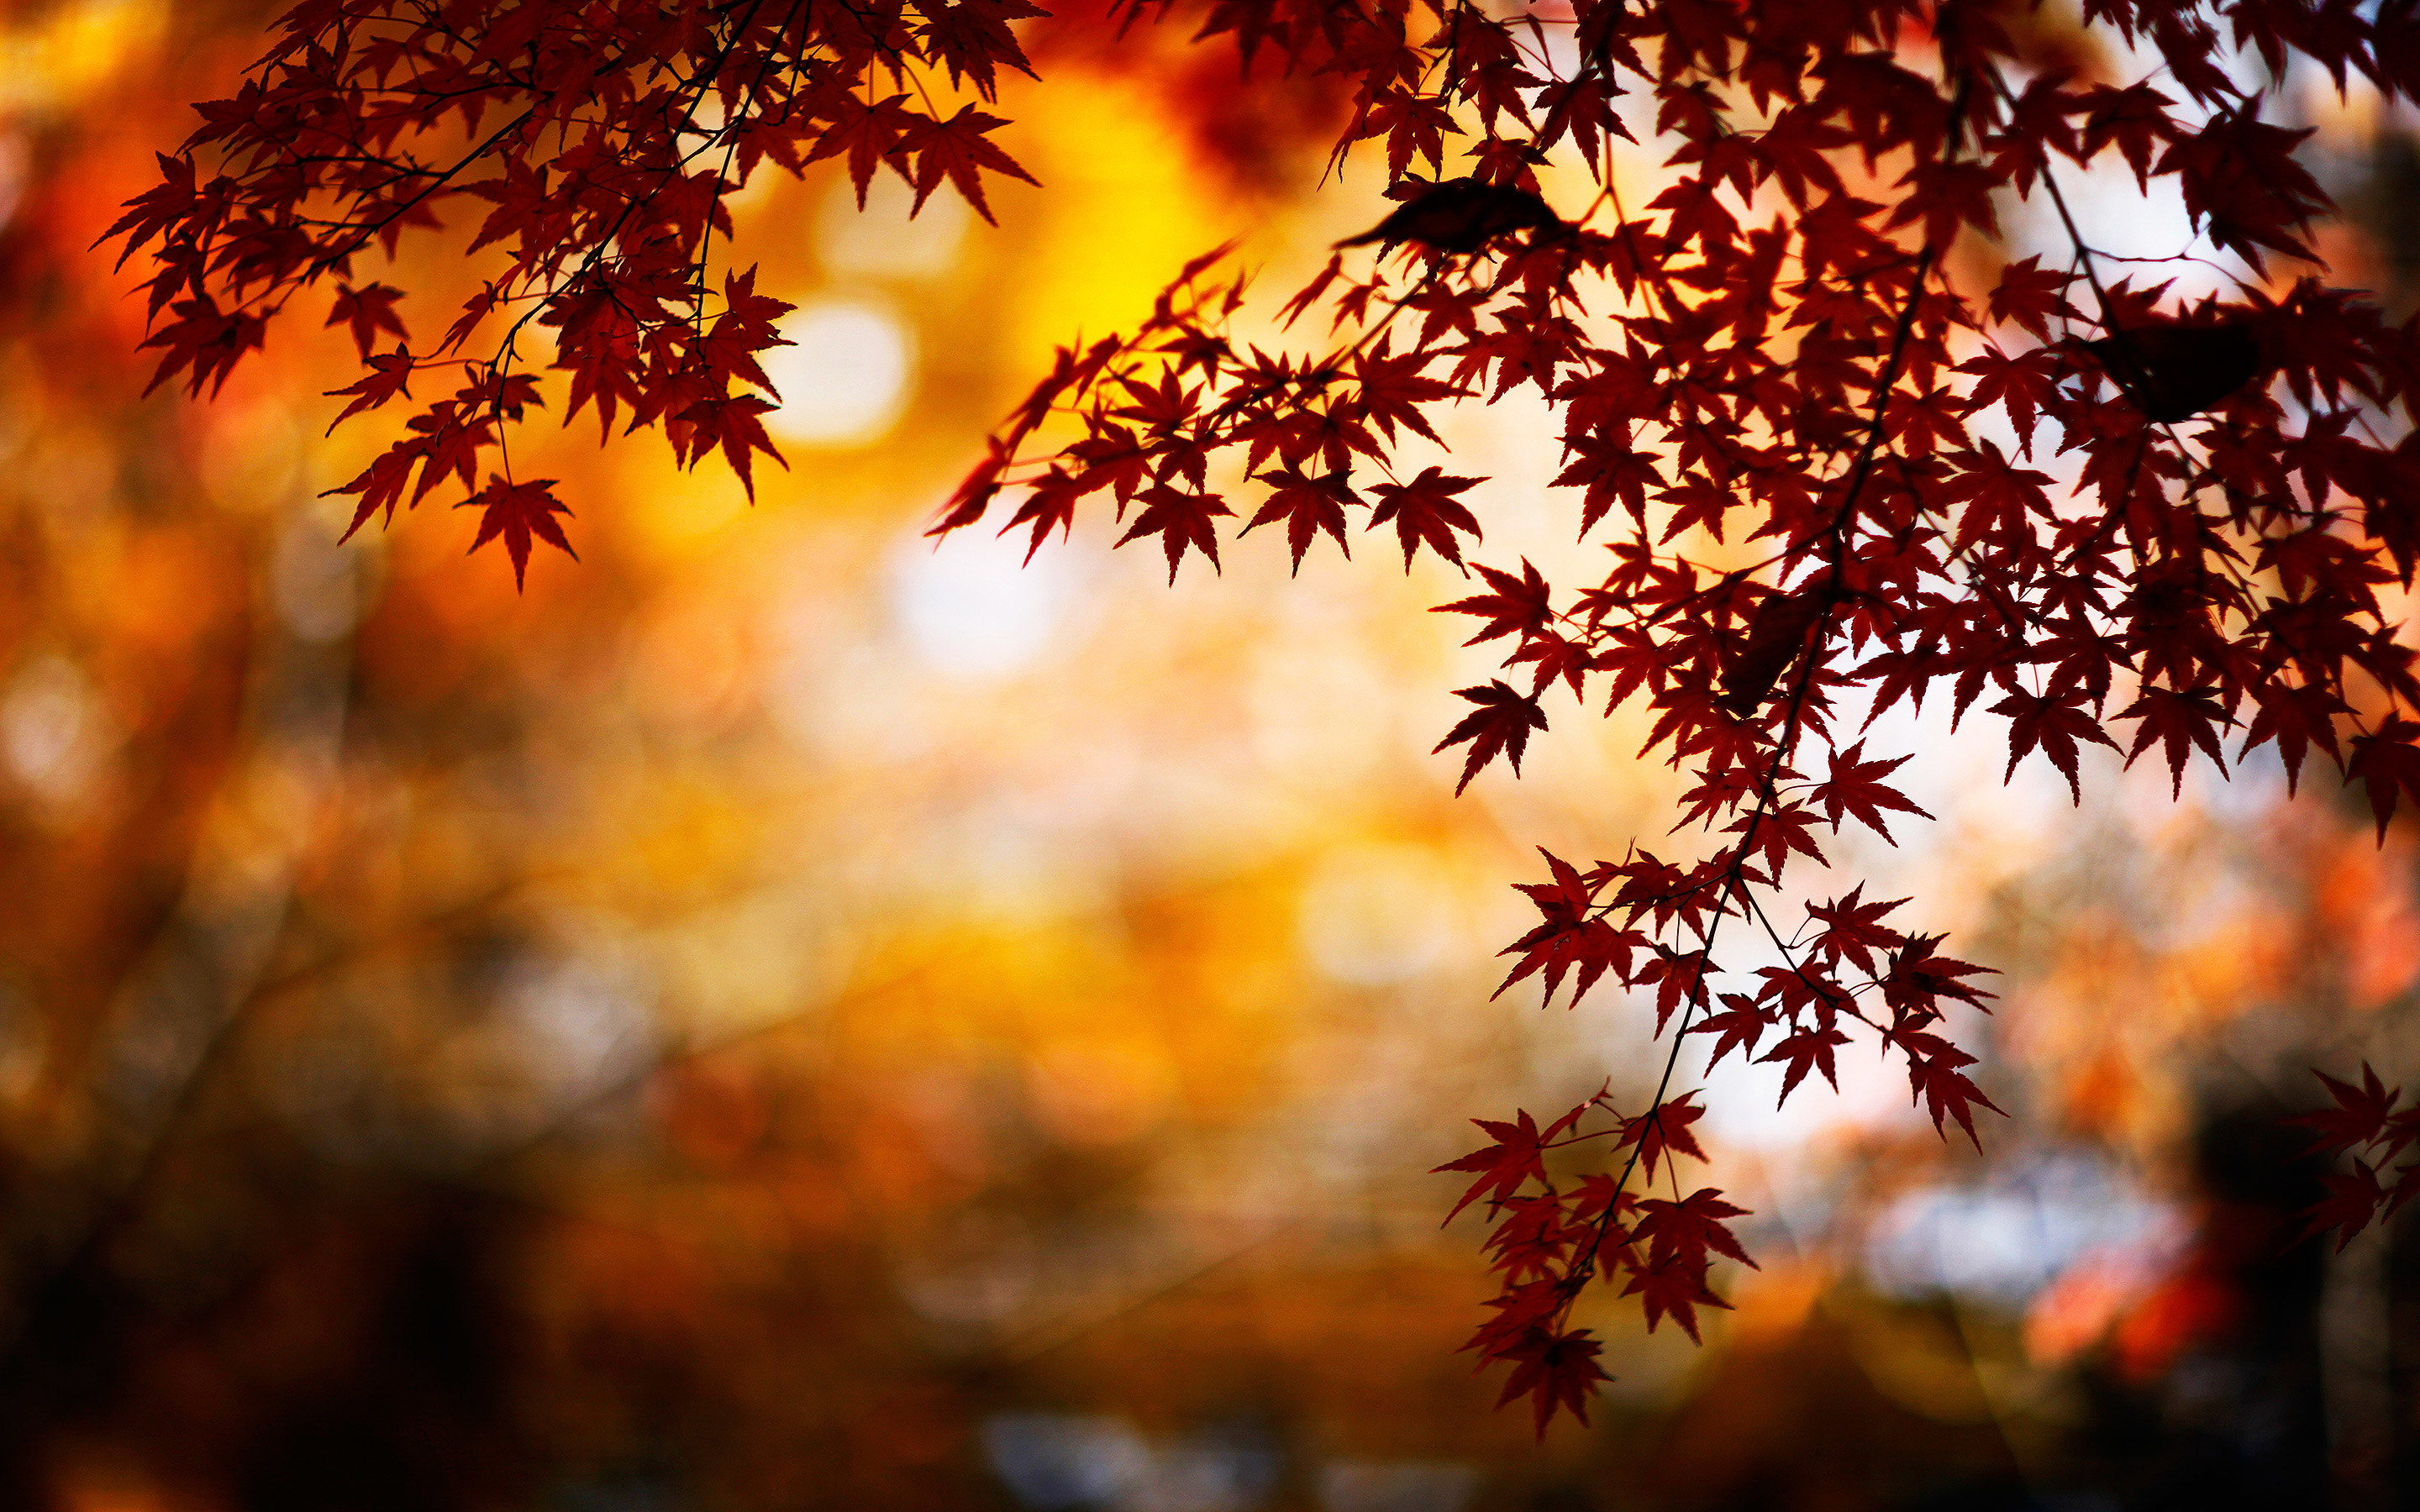 Desktop Wallpaper Autumn Leaves 65 Images